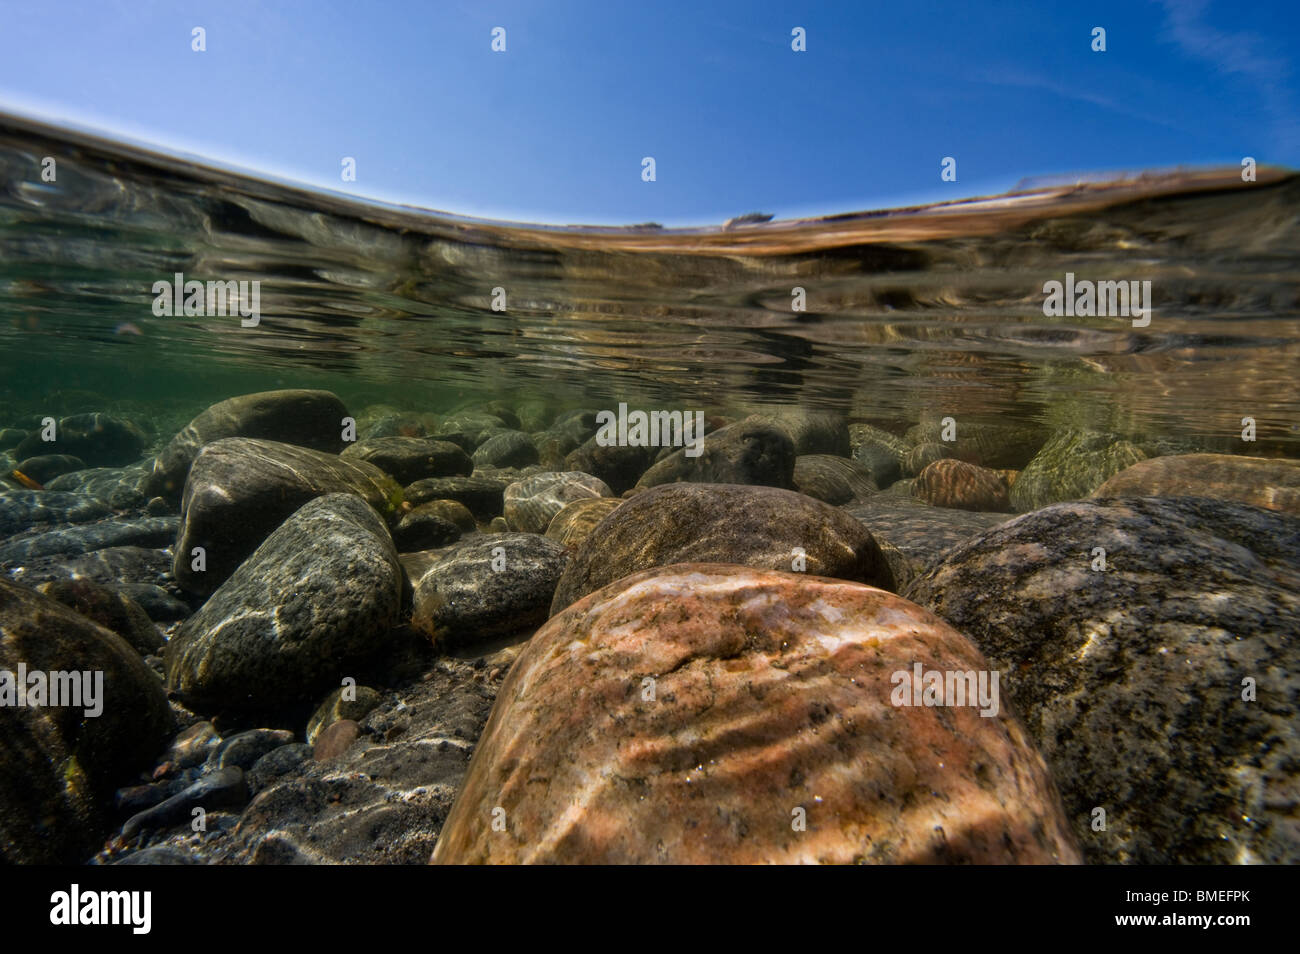 Scandinavia, Sweden, Halland, Vastkusten, View of seabed - Stock Image